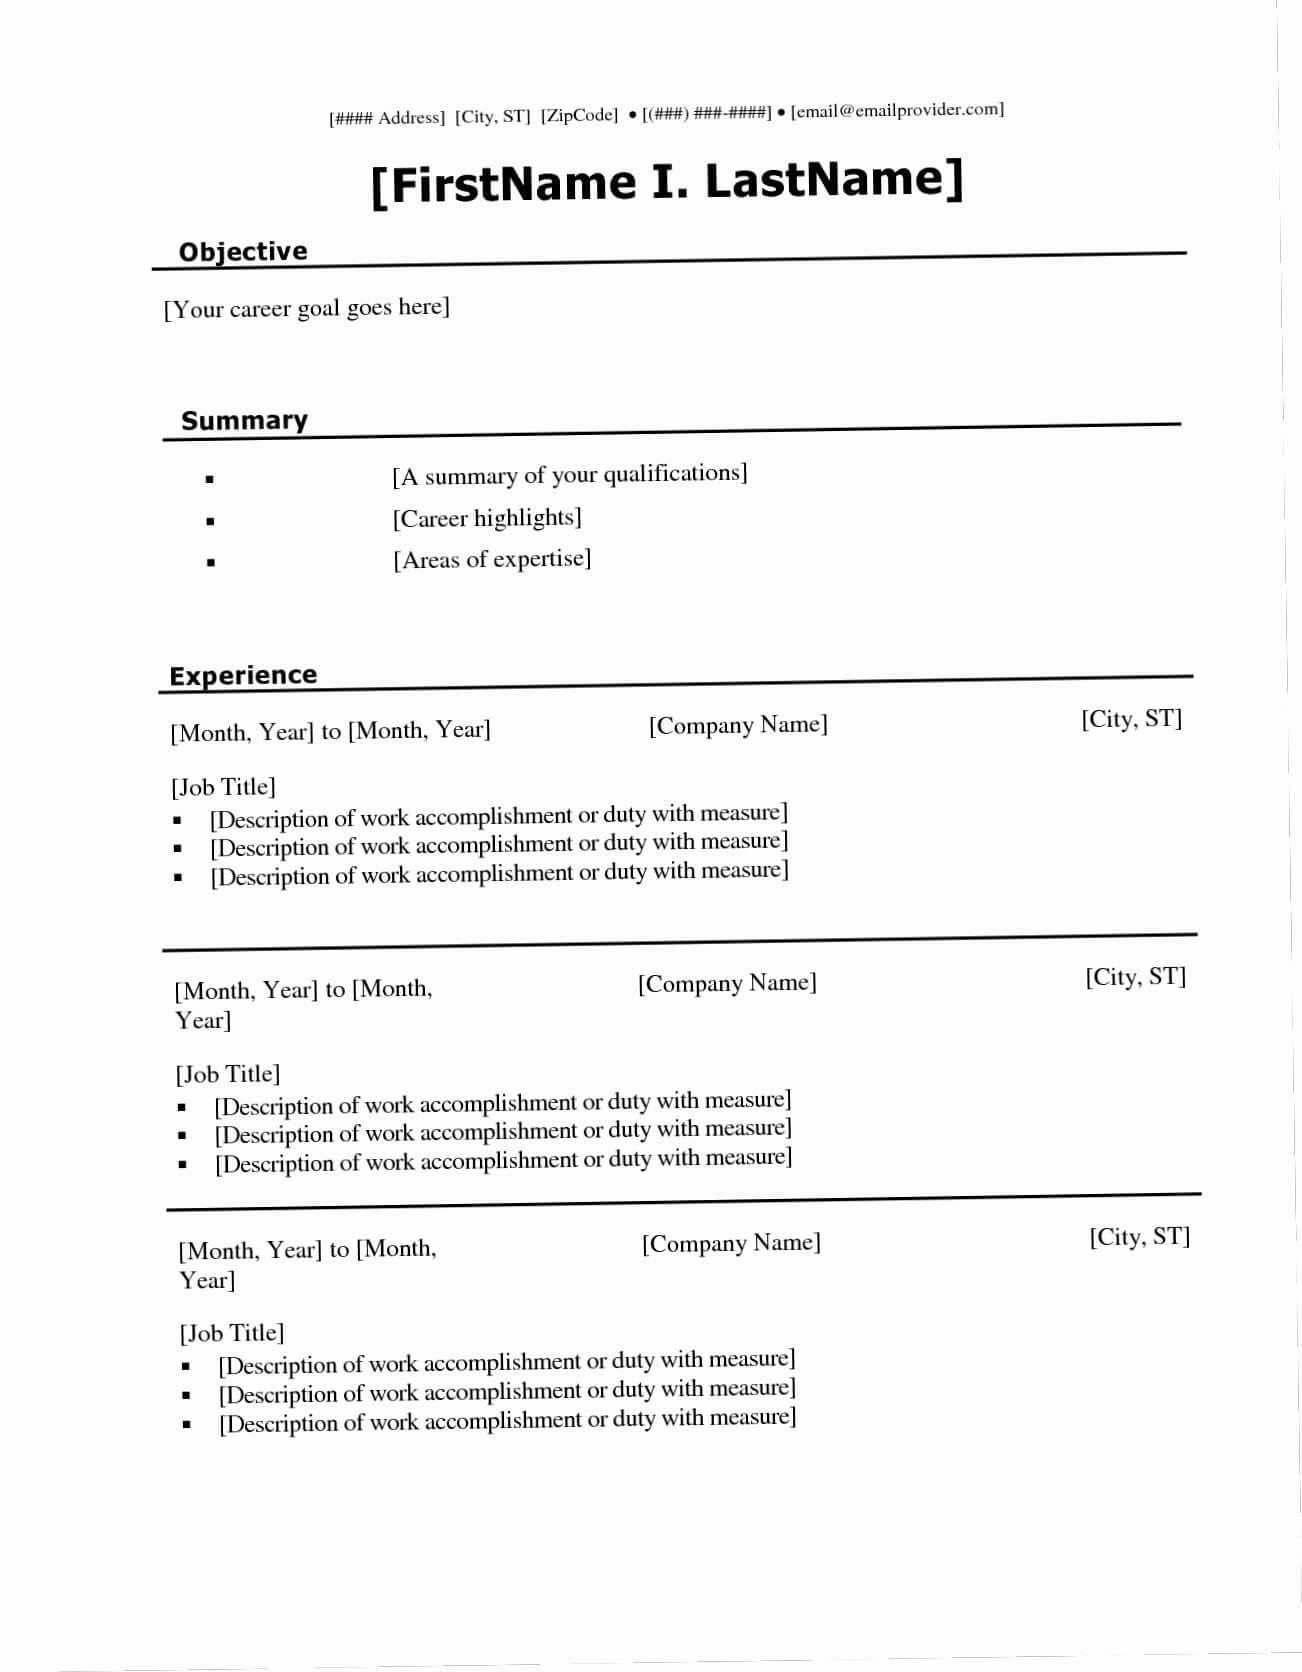 022 Fill Ine Template Lovely The Blank Templates For Intended For Blank Resume Templates For Microsoft Word